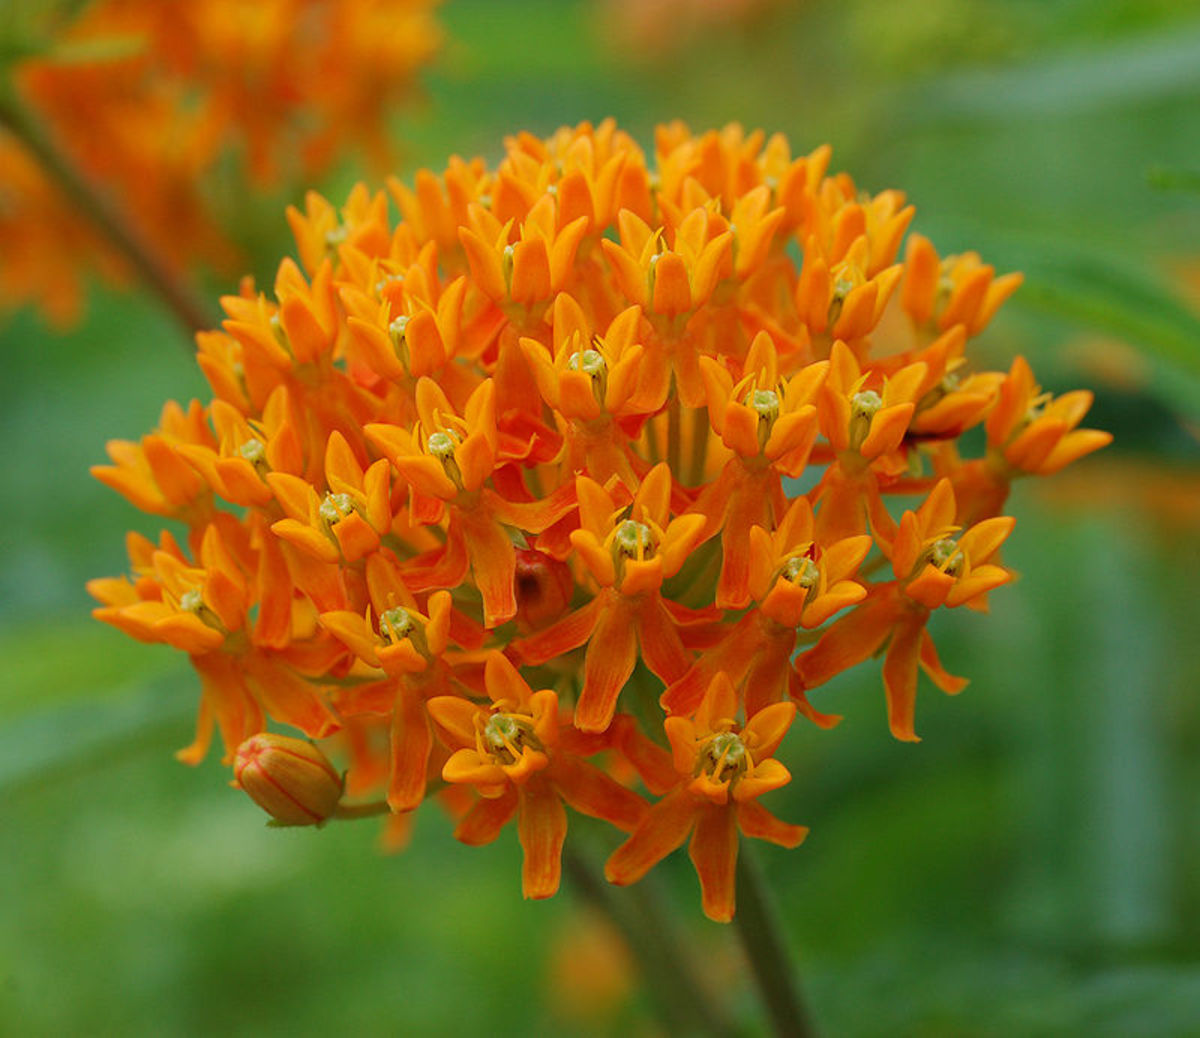 A. tuberosa, also known as Butterasfly Weed or Pleurisy Root.